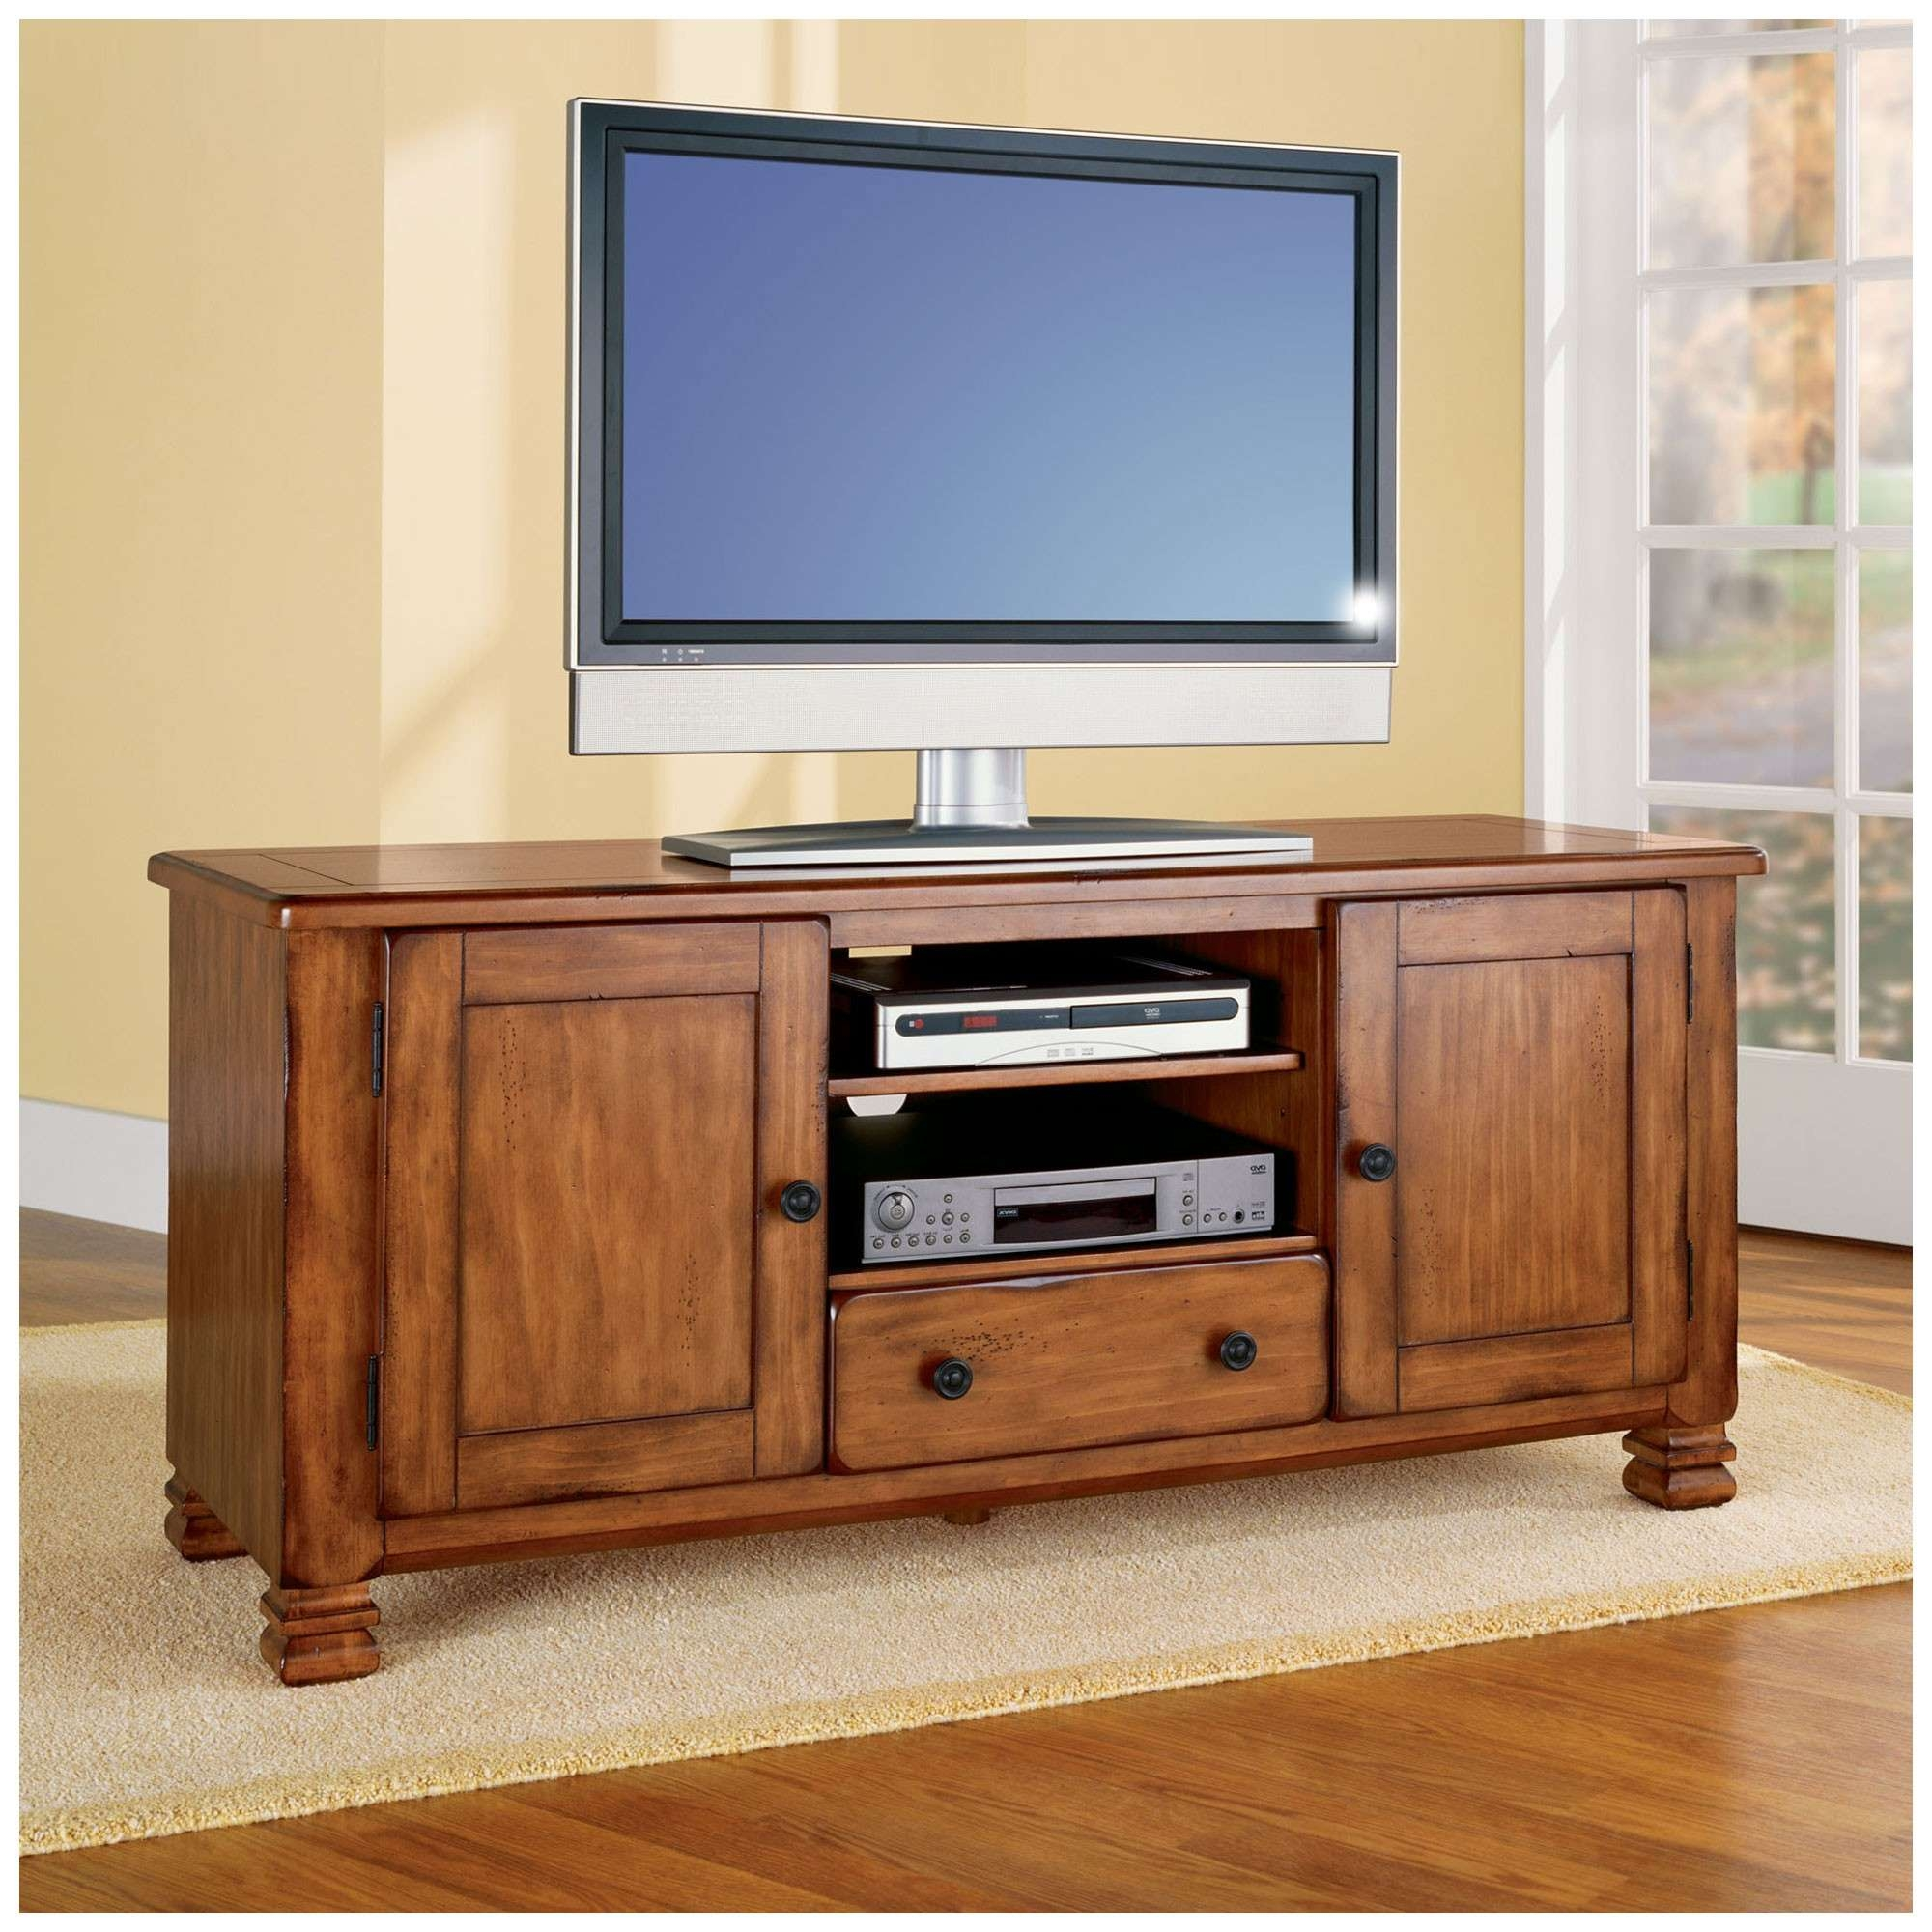 Fresh Cheap Cherry Wood Tv Stands Cabinets #17103 For Cheap Oak Tv Stands (View 2 of 15)